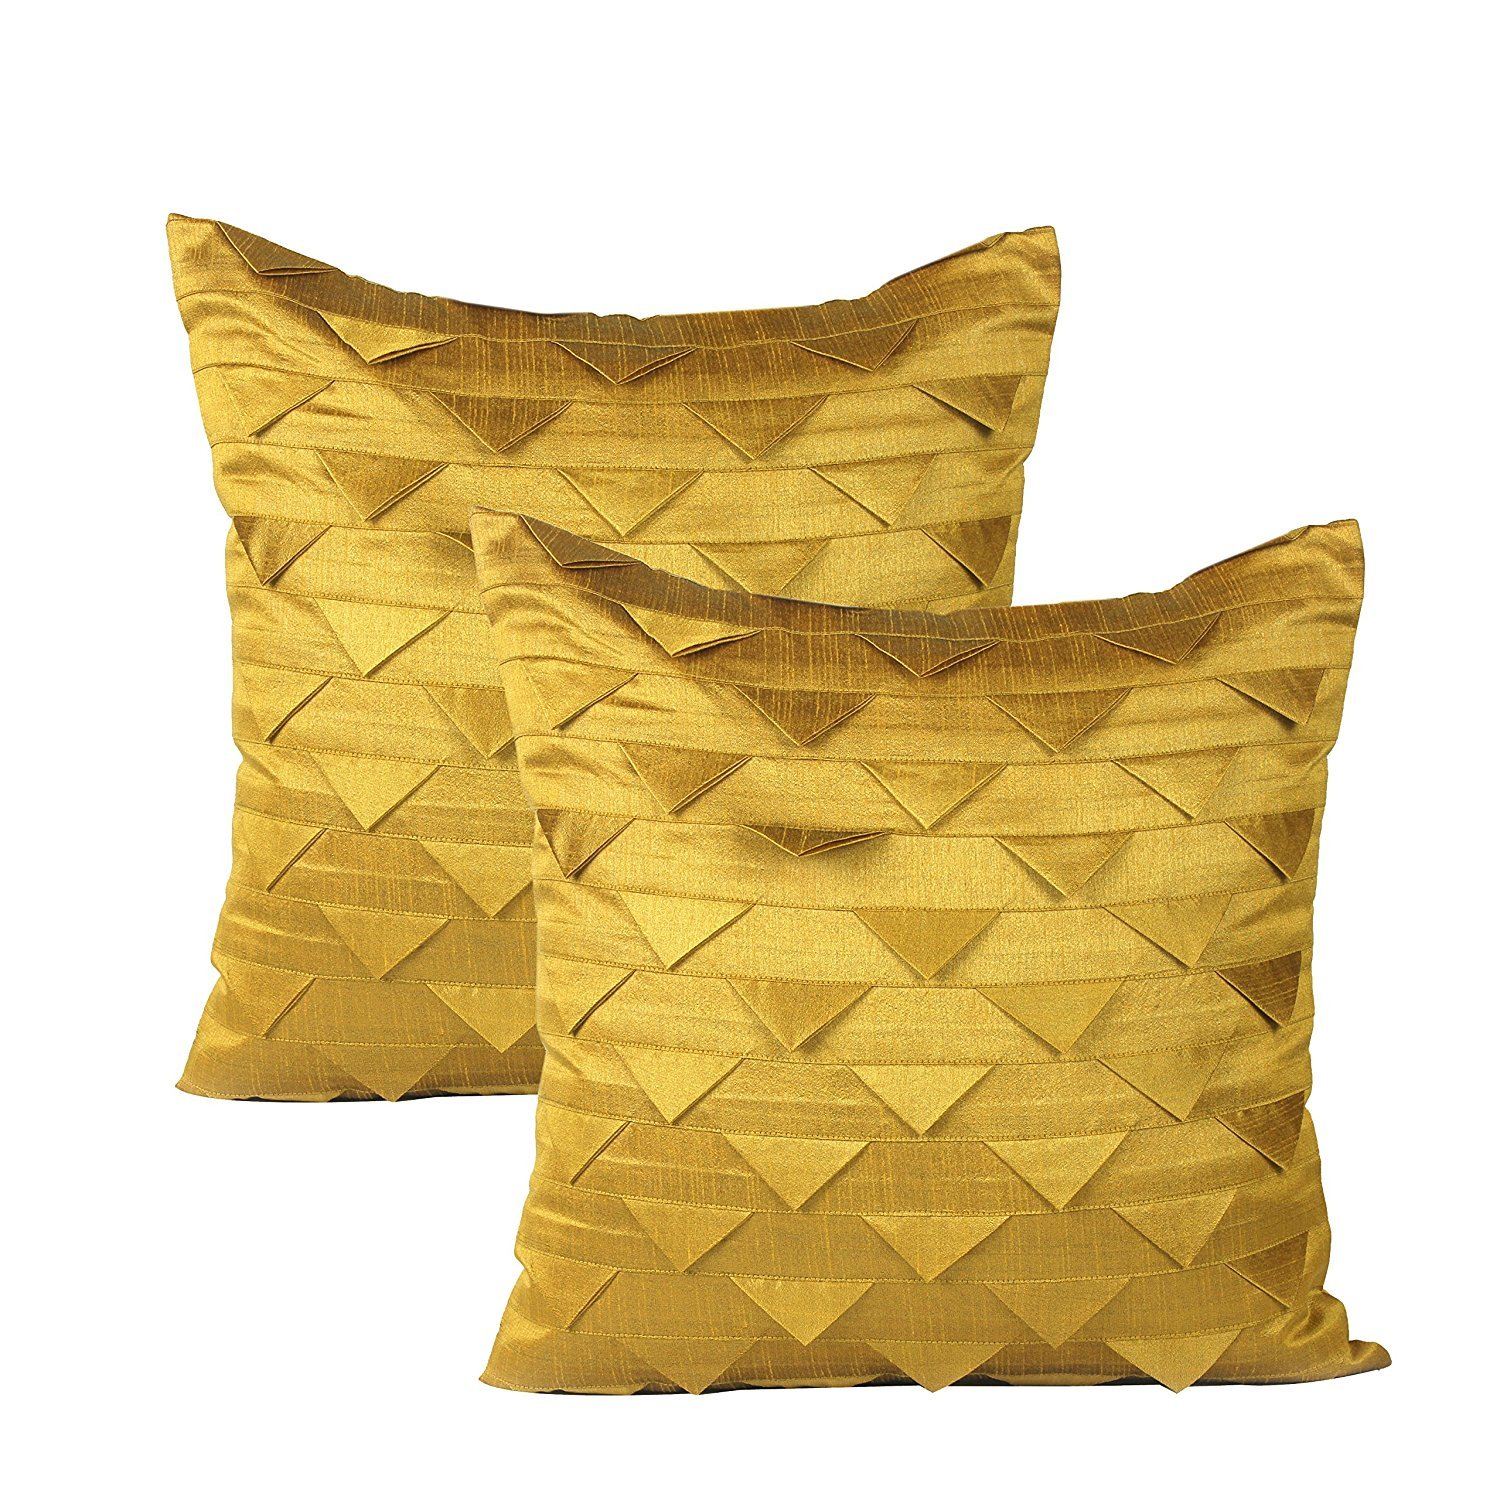 The White Petals Set of 2 Mustard Yellow Pillow Case, Origami Style, Textured (Solid Mustard Yellow, 18x18 inches)